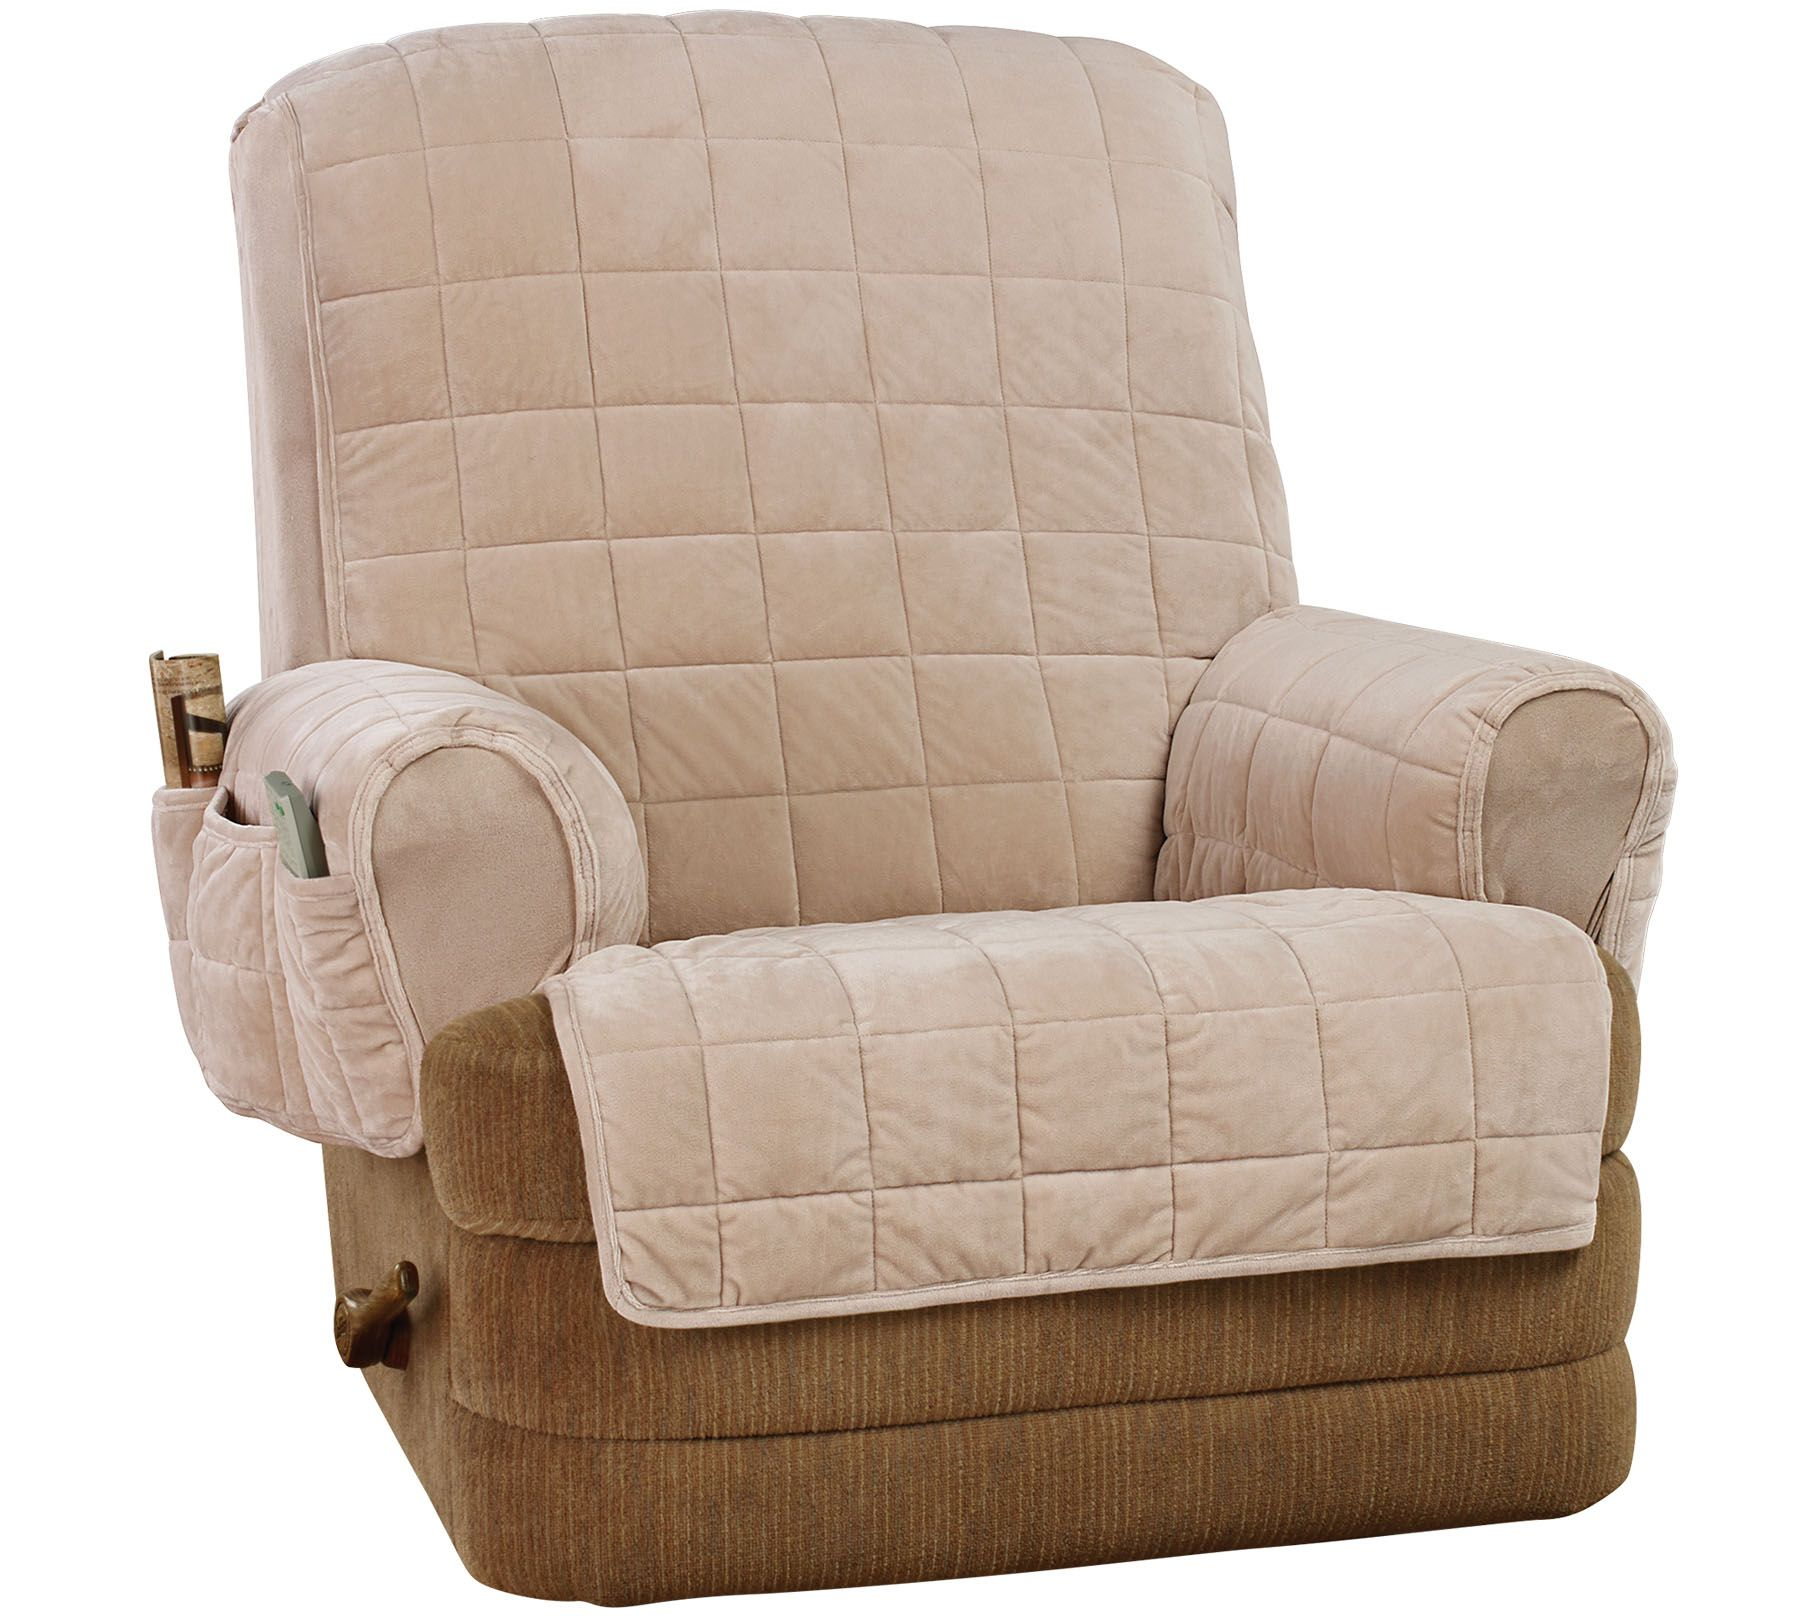 Isaac Swivel Chair Slipcover Sure Fit Ultra Deluxe